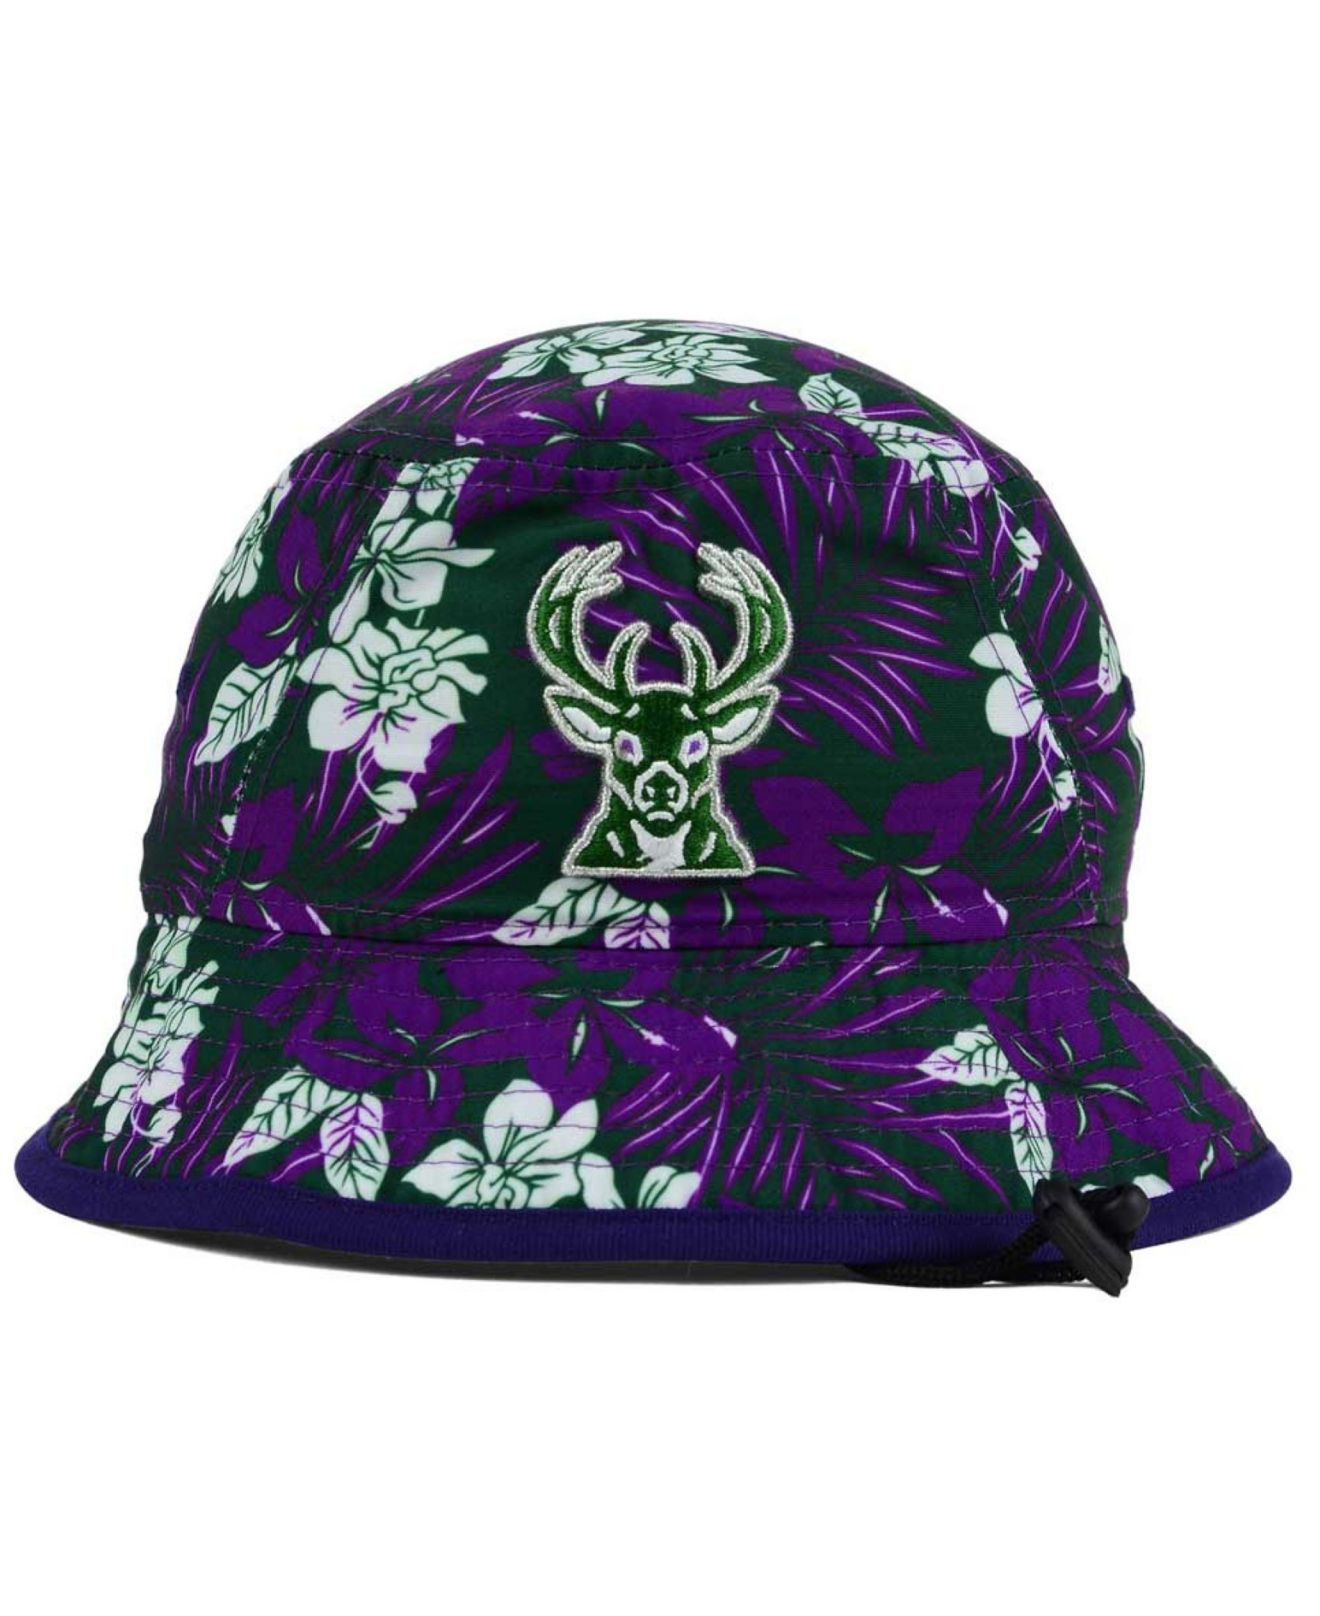 0f25772449f cheap nba milwaukee bucks bucket hats flora colorful 508 488da c967d   reduced how do i get a bucks bucket hat mkebucks a4374 24930